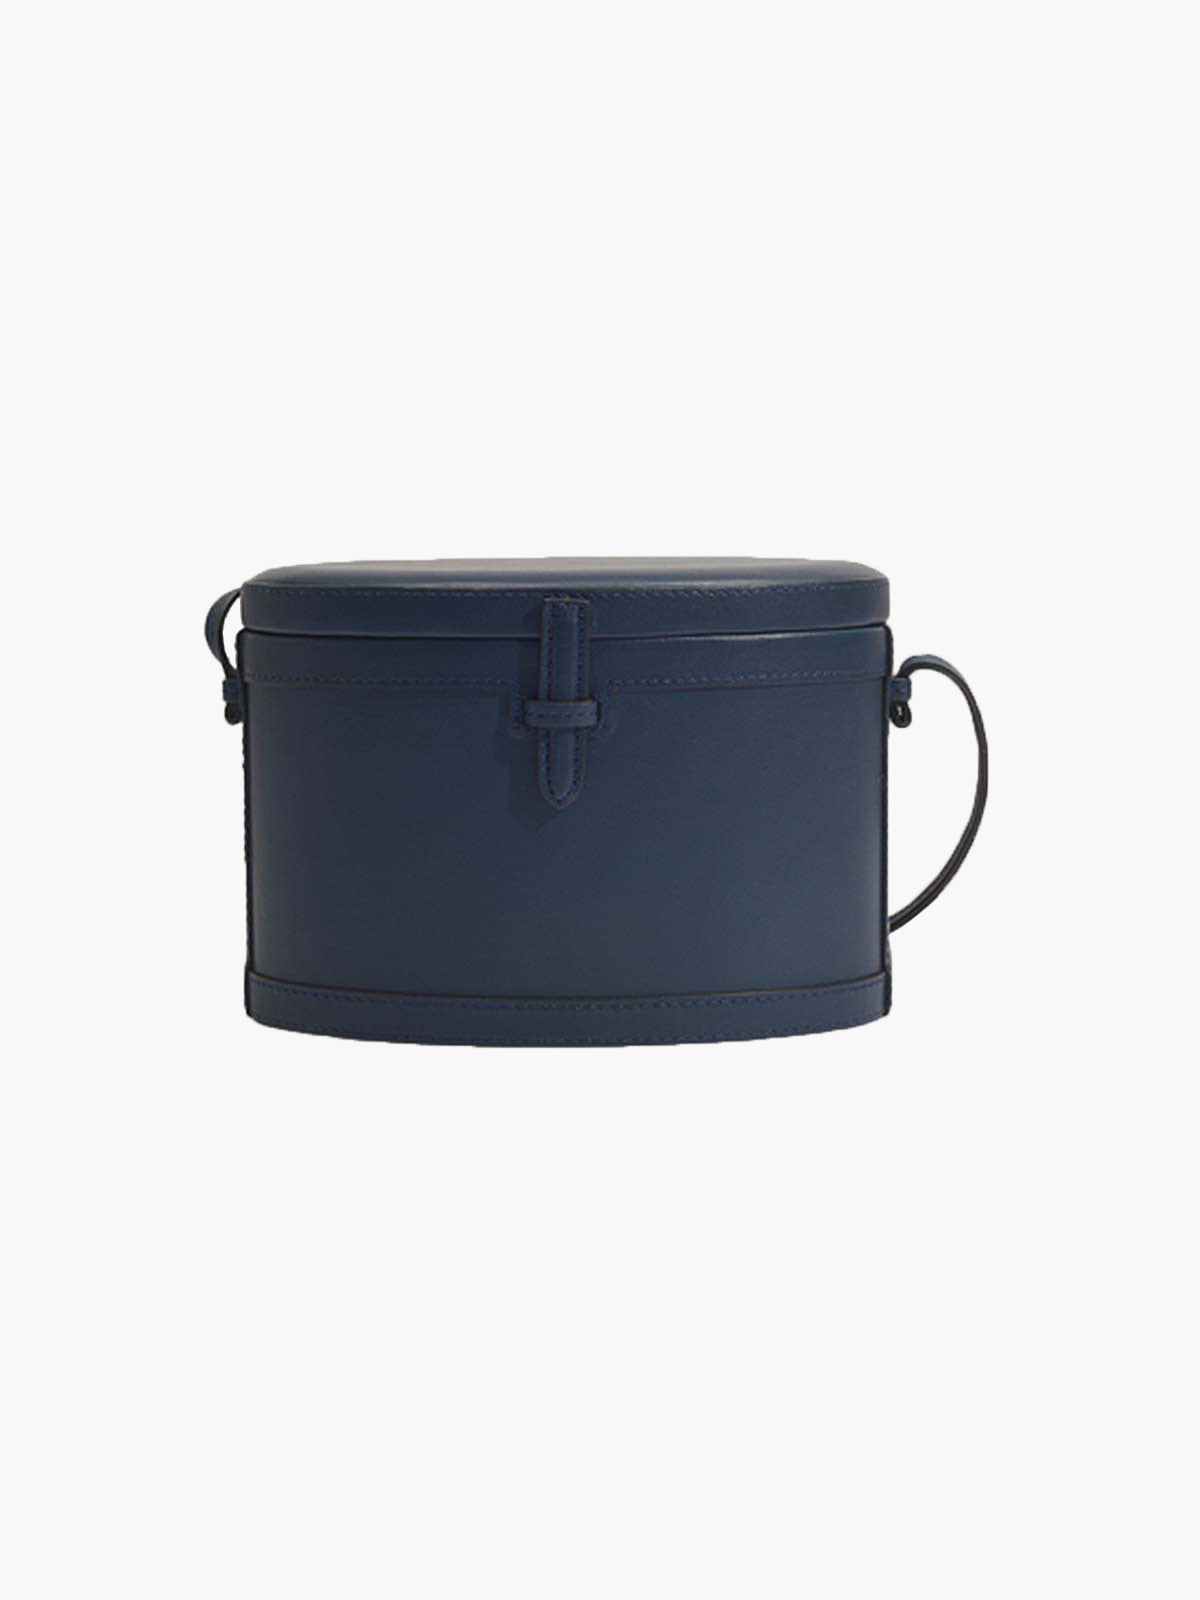 Round Trunk Bag | Teal